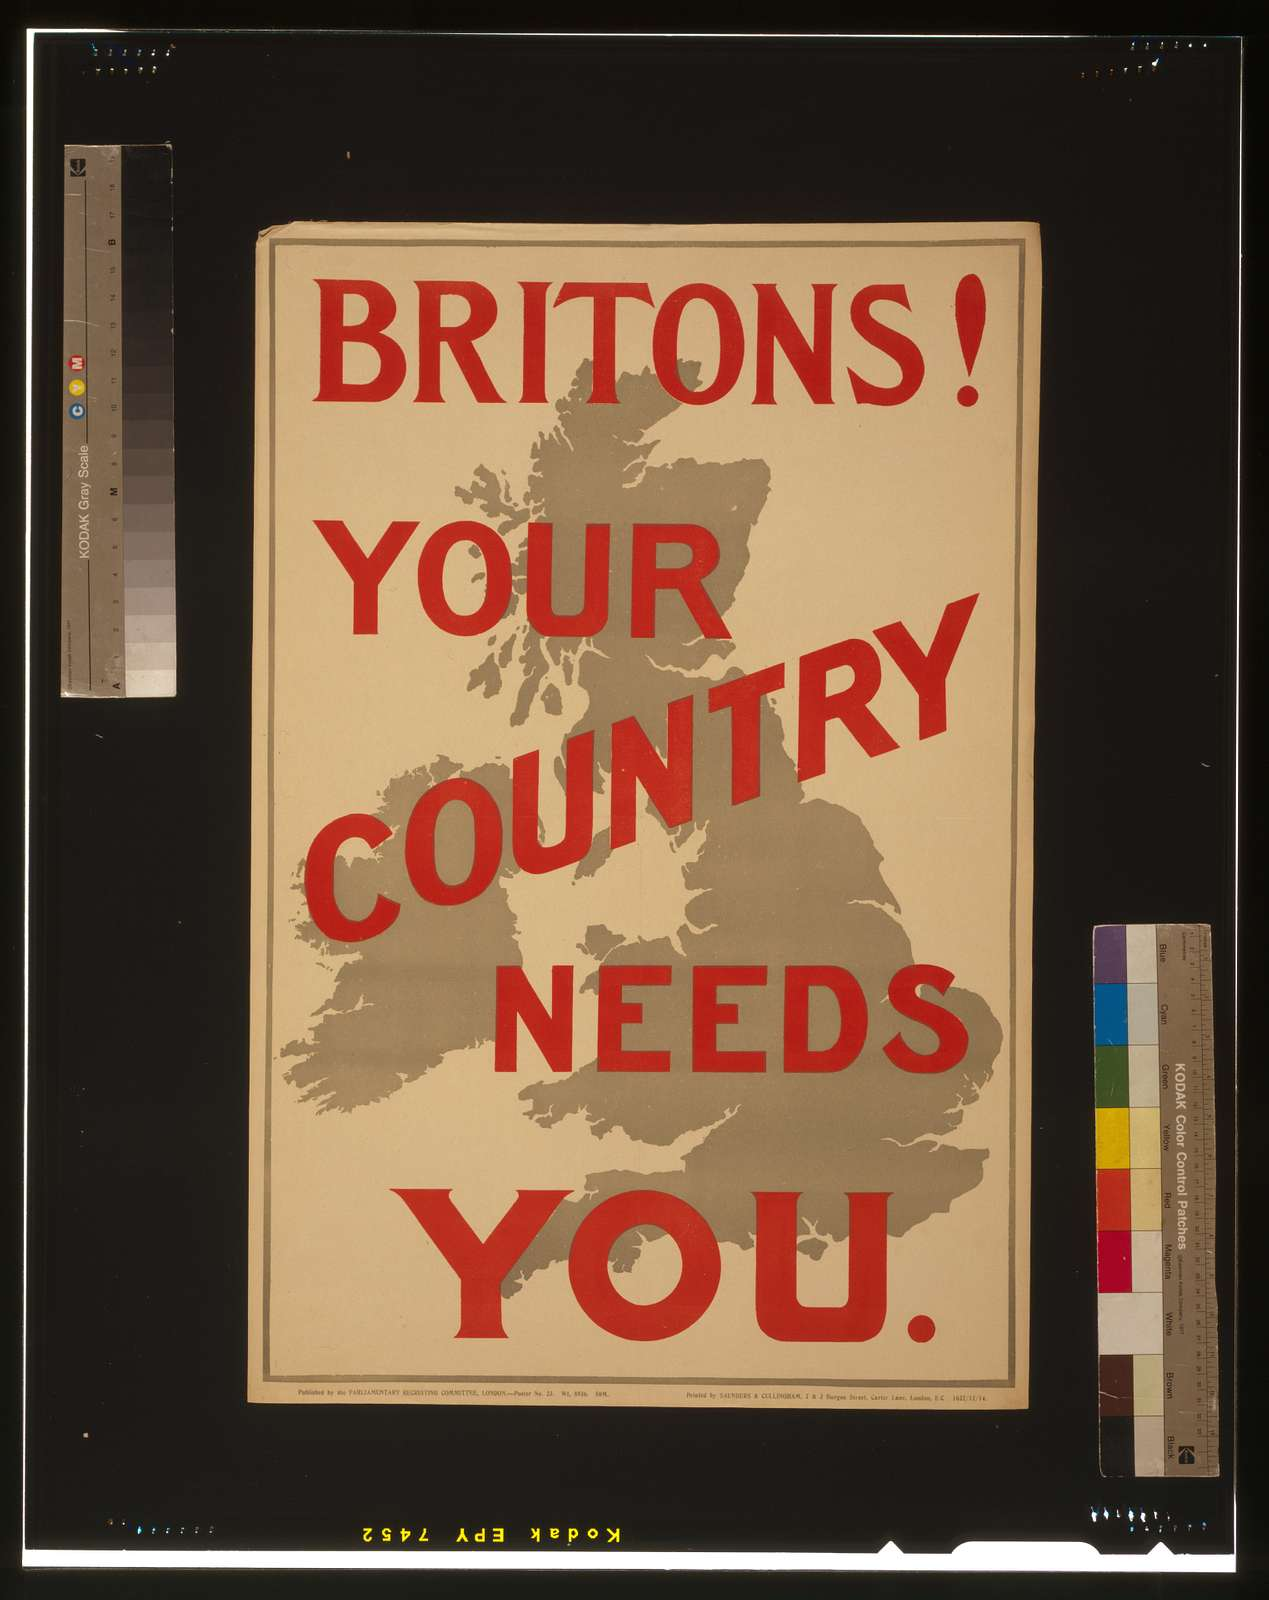 Britons! Your country needs you / Printed by Saunders & Cullingham, 2 & 3 Burgon Street, Carter Lane, London, E.C.